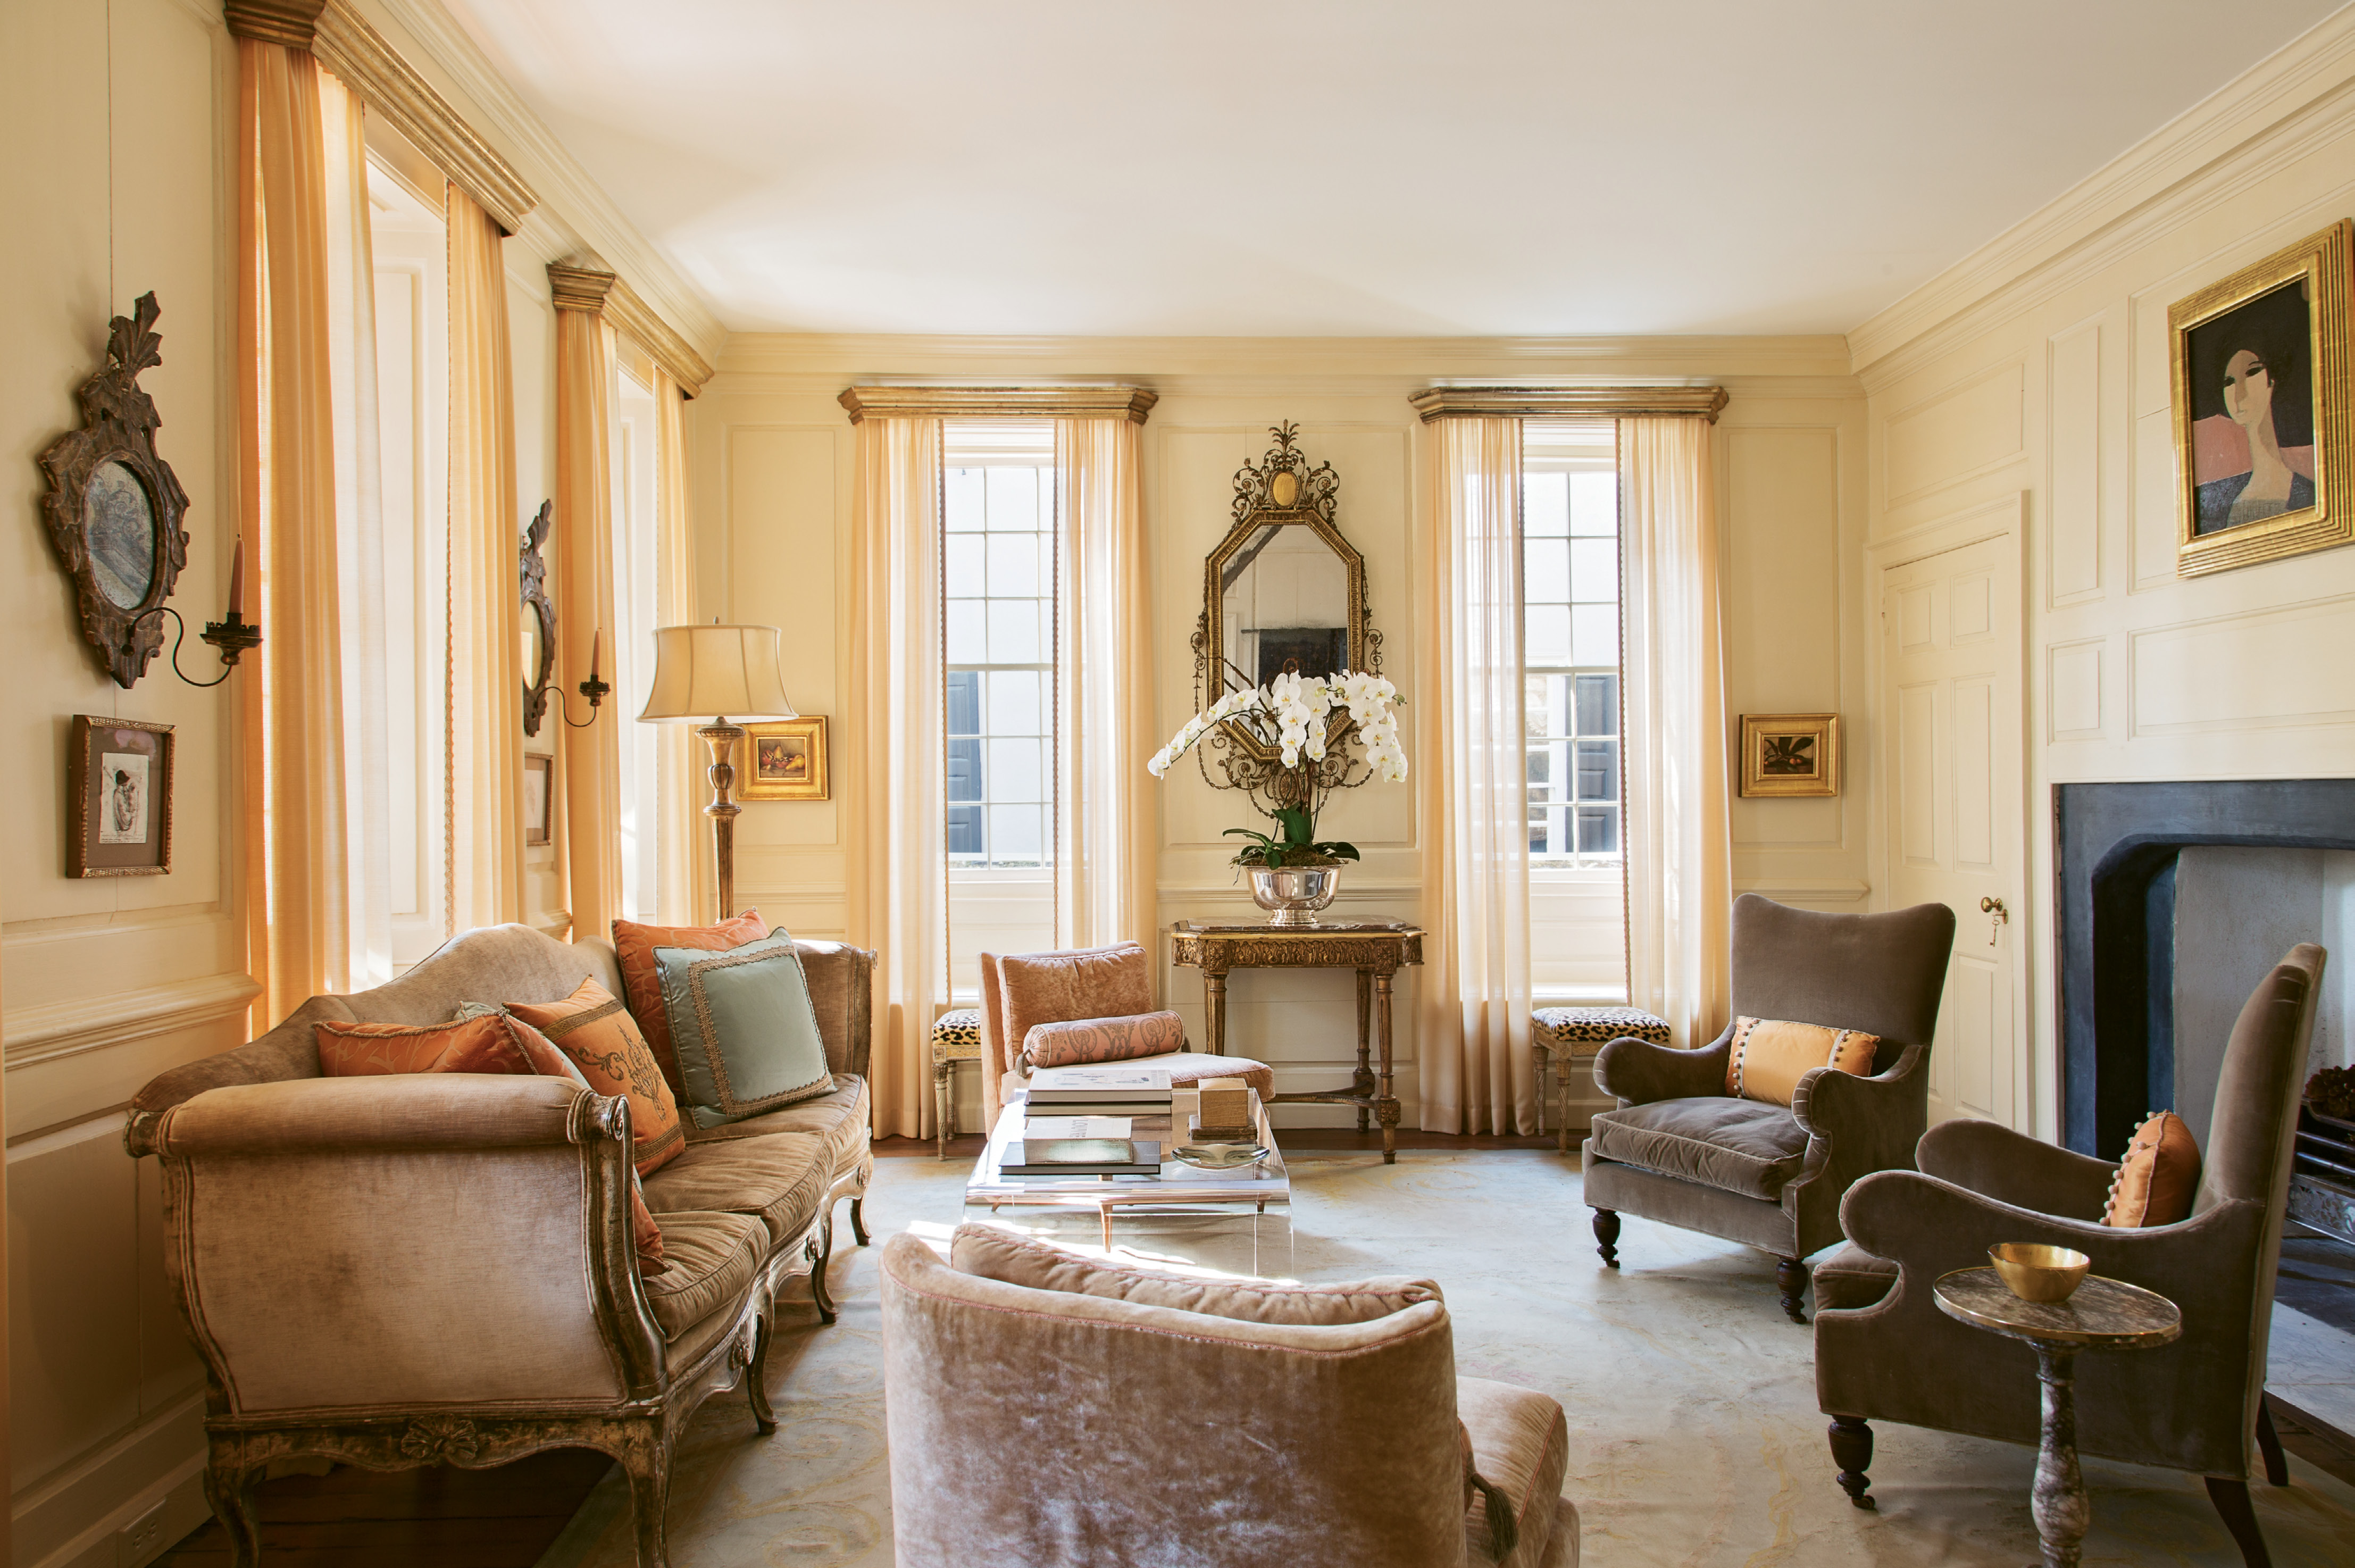 "A 1968 portrait by French painter André Minaux sets the tone for the first-floor drawing room. ""She has that little bit of pink,"" says Ann. ""We put her right over the classical Georgian fireplace and suddenly the room got very feminine."" Sketches by Ben Long and two still lifes by Jill Hooper round out the room's luxe vibe."